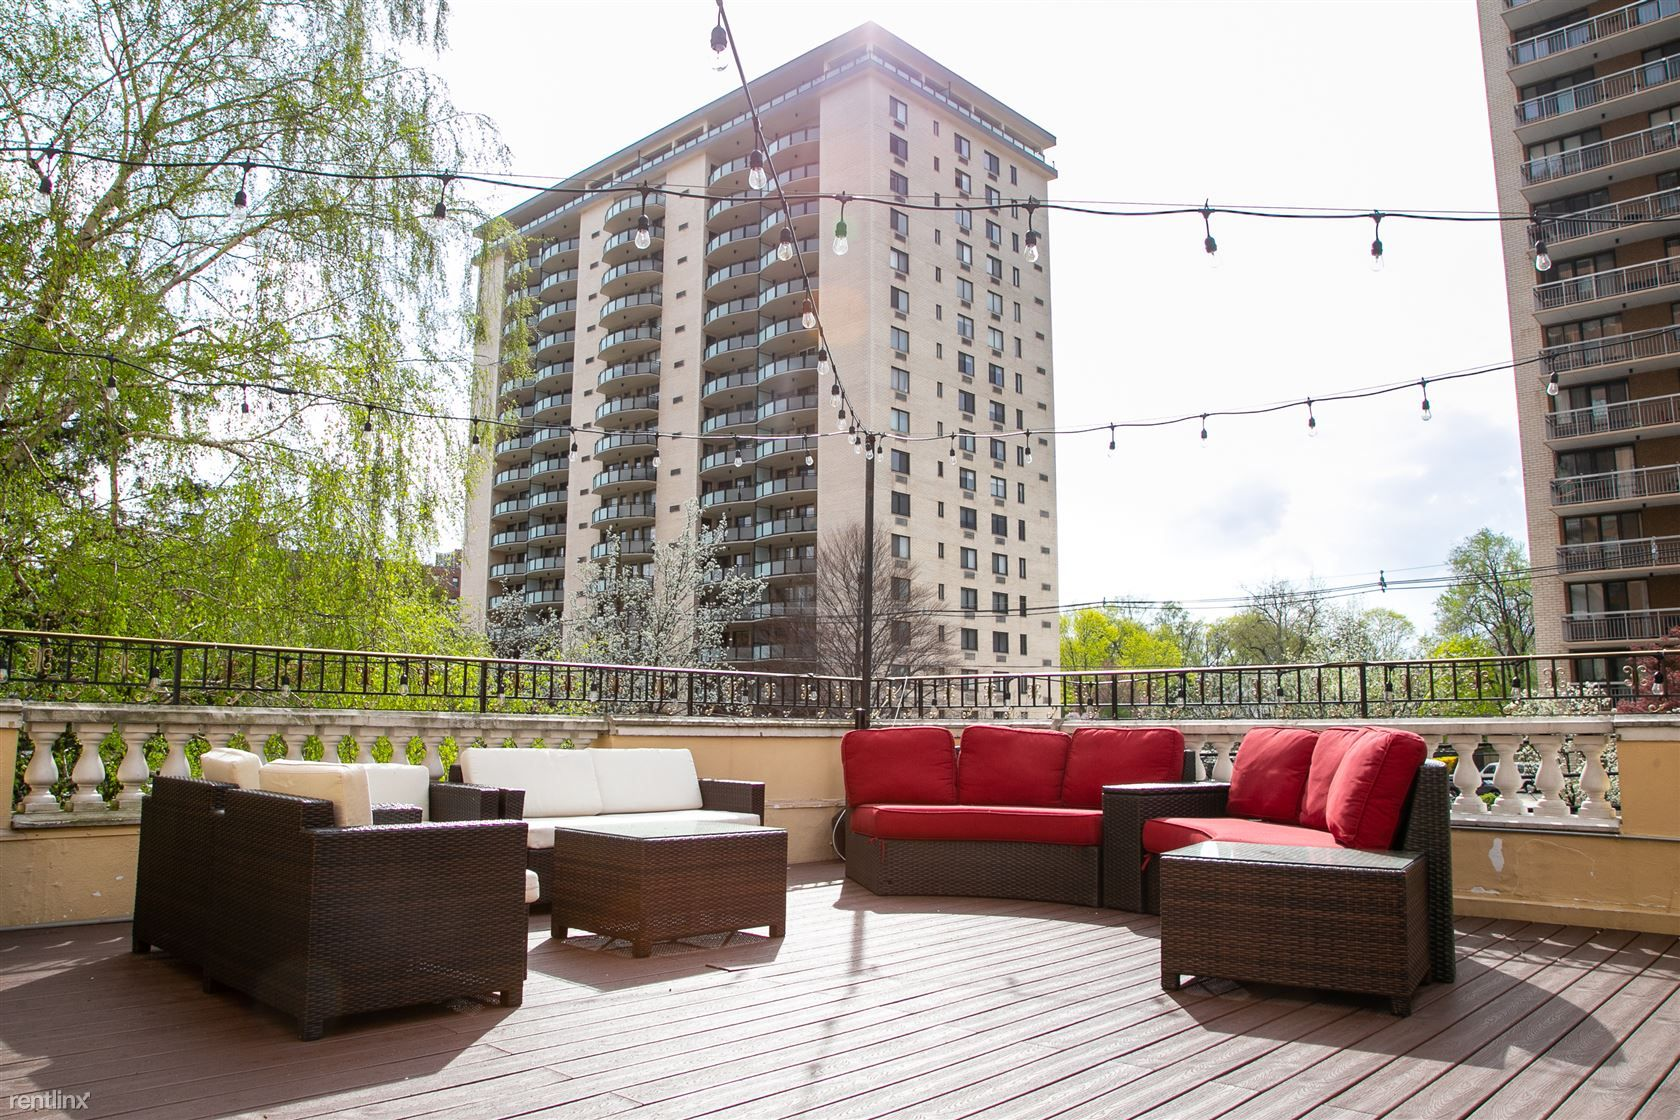 The Excelsior II Luxury Apartments